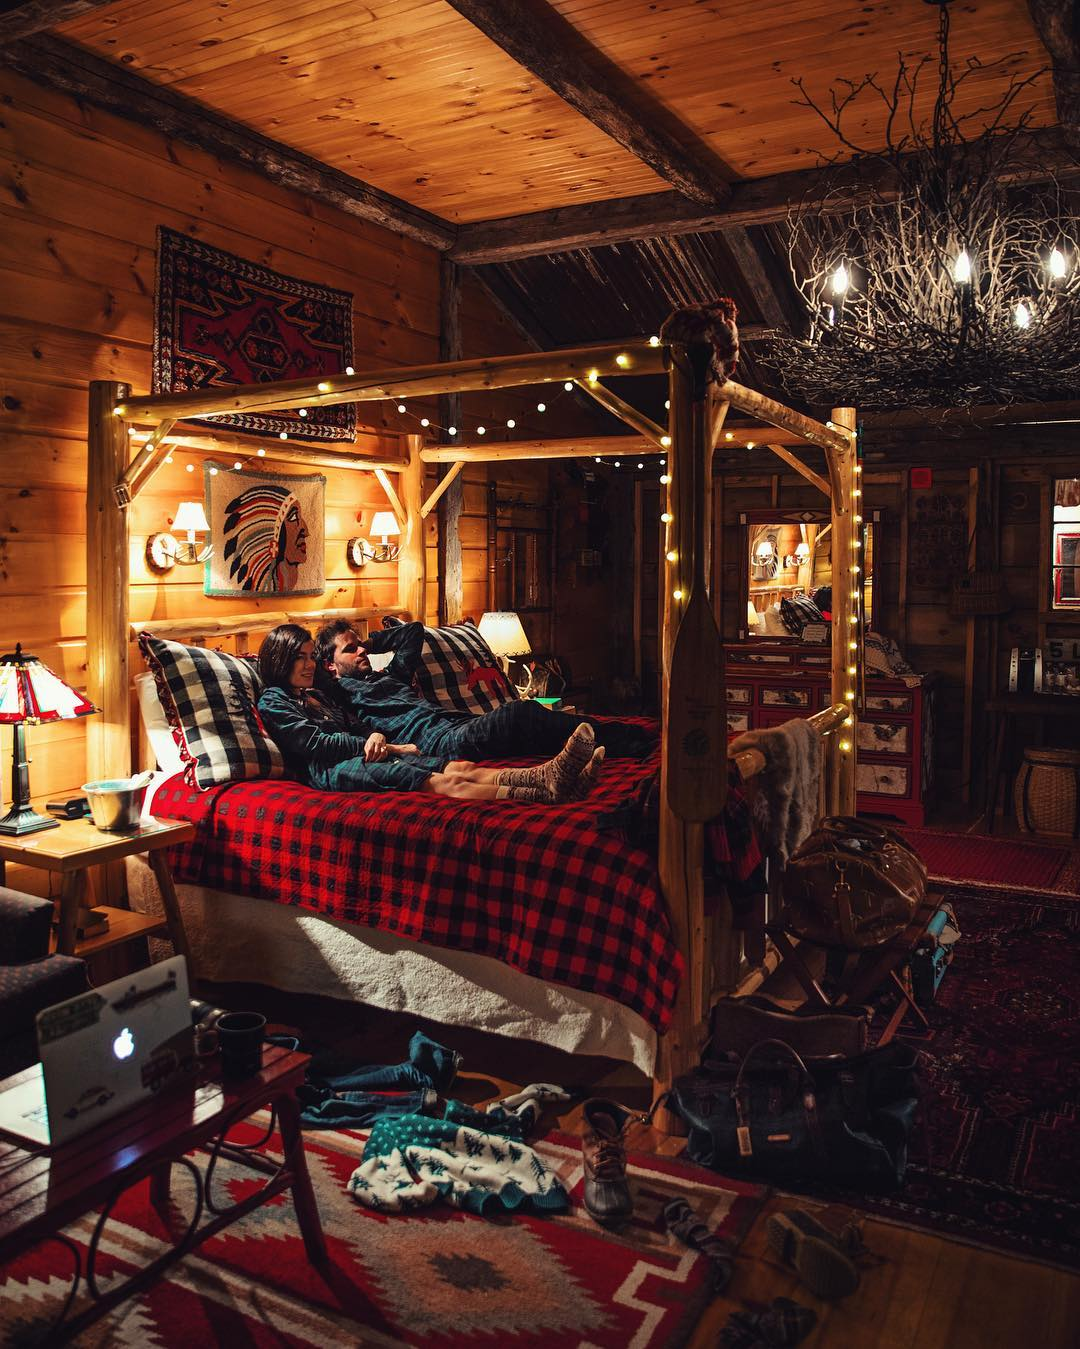 Cabin Bedroom Ideas: 27 Log Cabin Interior Design Ideas